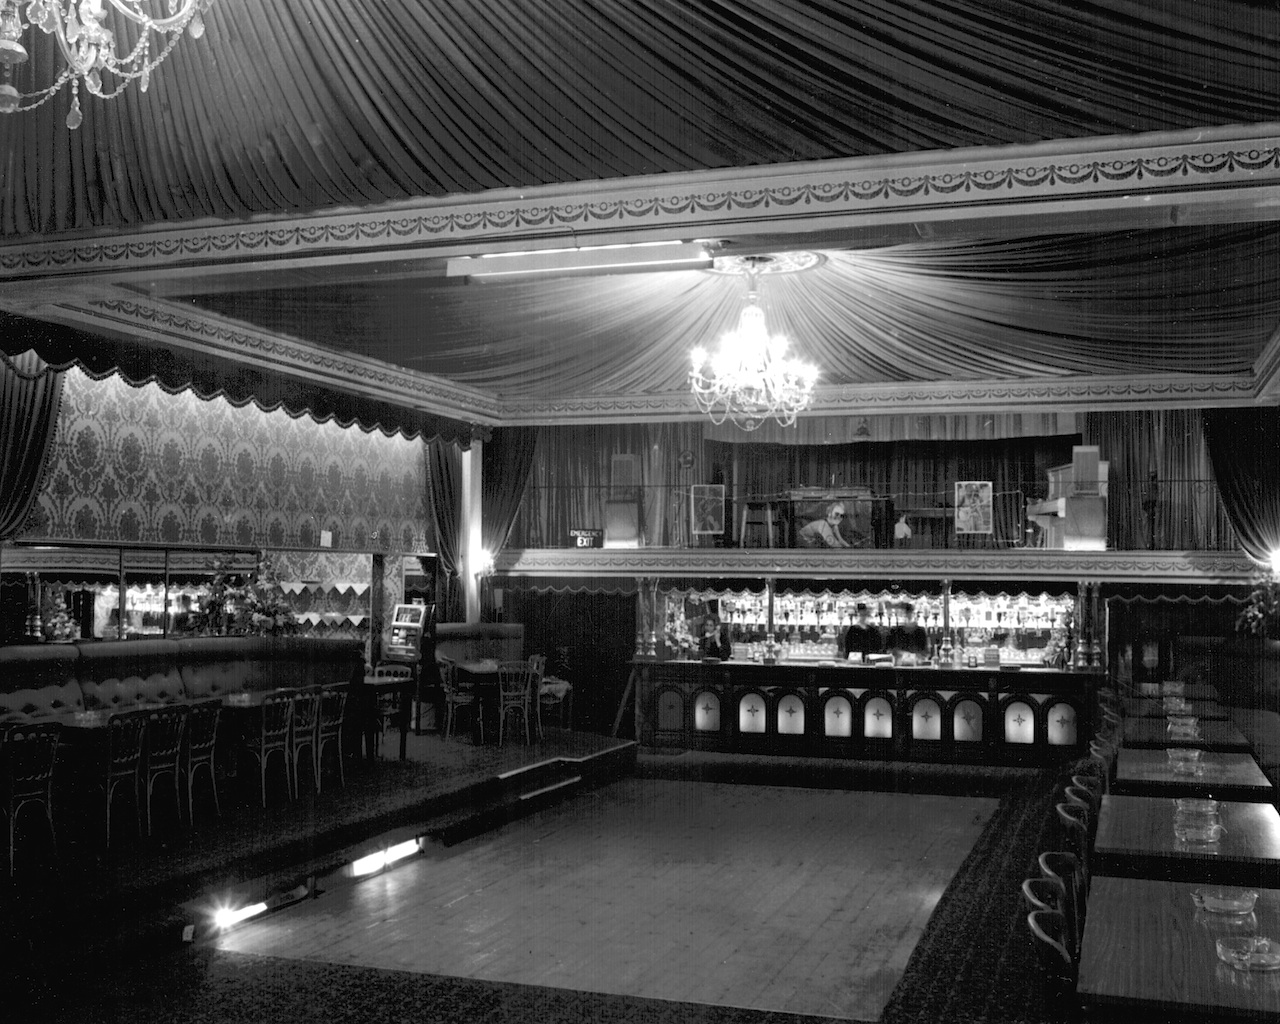 Large rectangular dance floor with camp swish fabric drapes and ornate chandelier overhead, long bar with altar-like frontage behind.